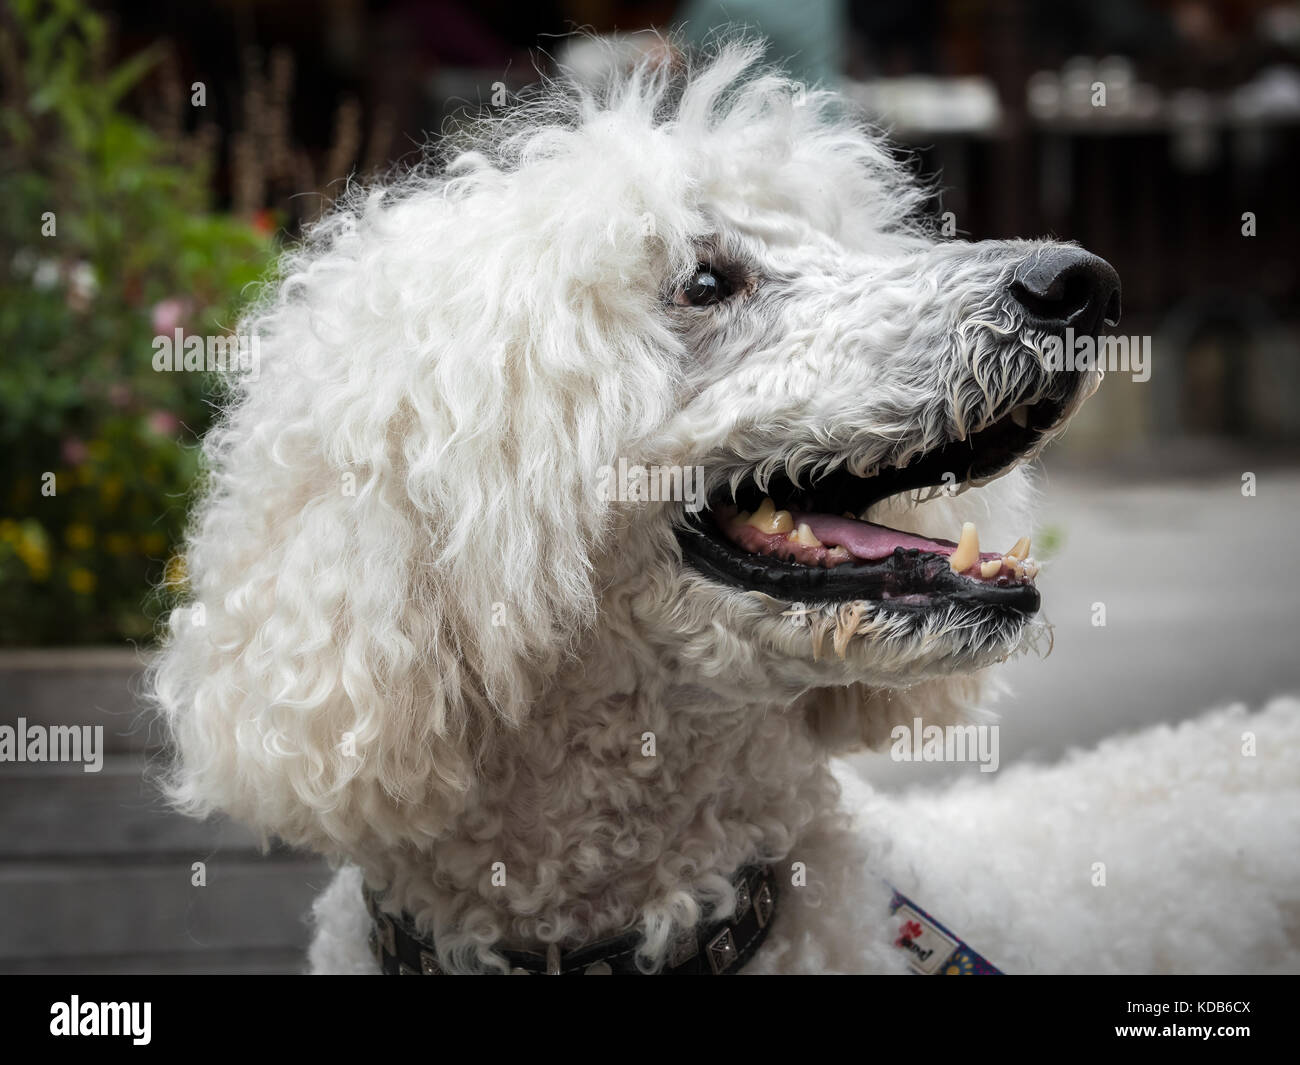 Portrait of a white royal poodle with an open mouth - Stock Image